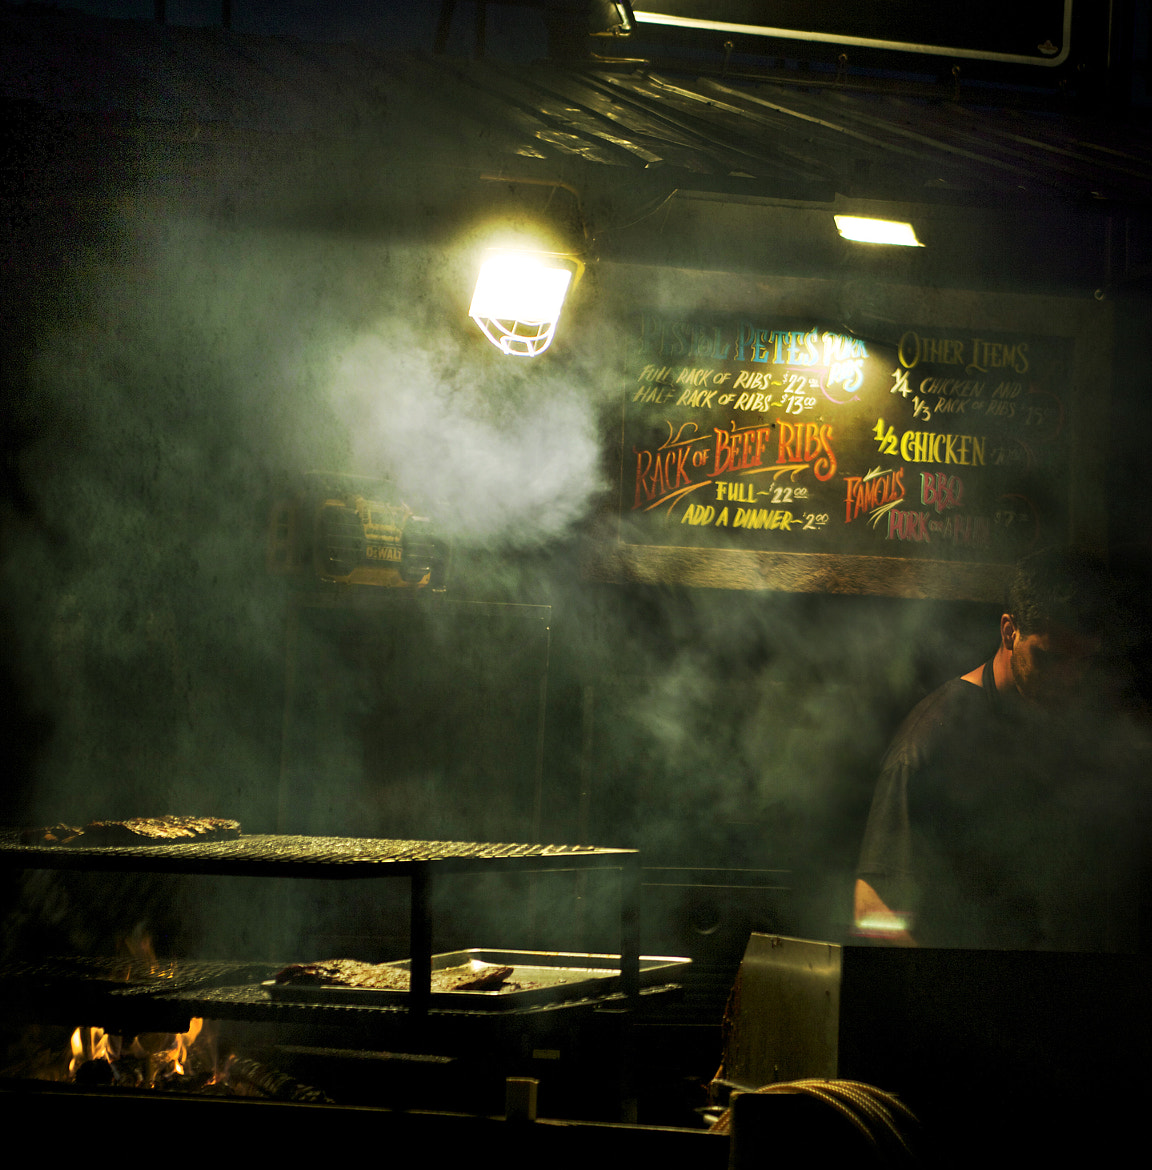 Photograph Late Night Ribs by Tania Fitzpatrick on 500px